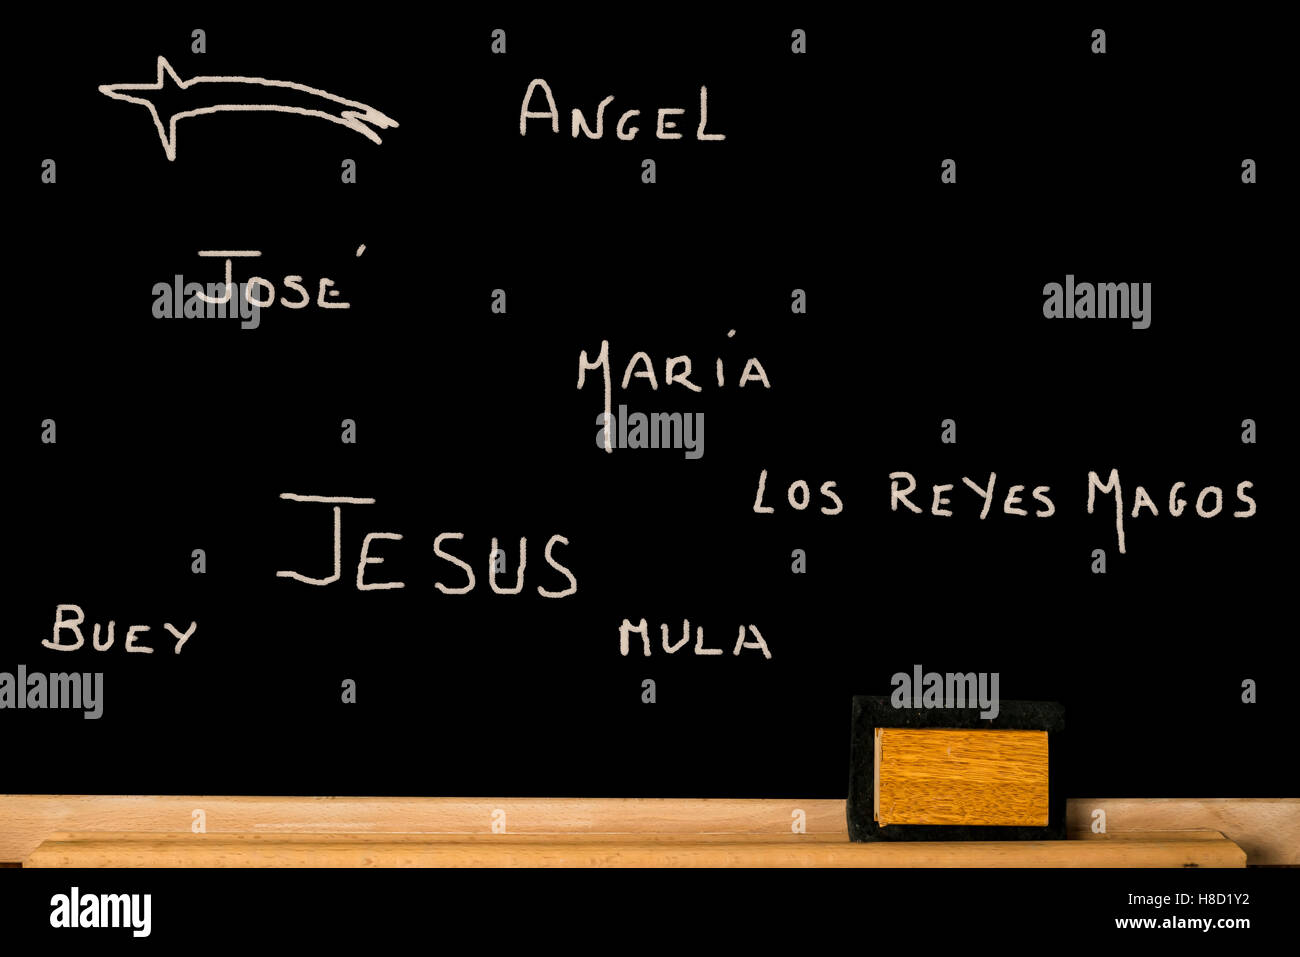 Concept Christmas card, names written on a blackboard of the components of Nativity scene in spanish language, Jesus, - Stock Image